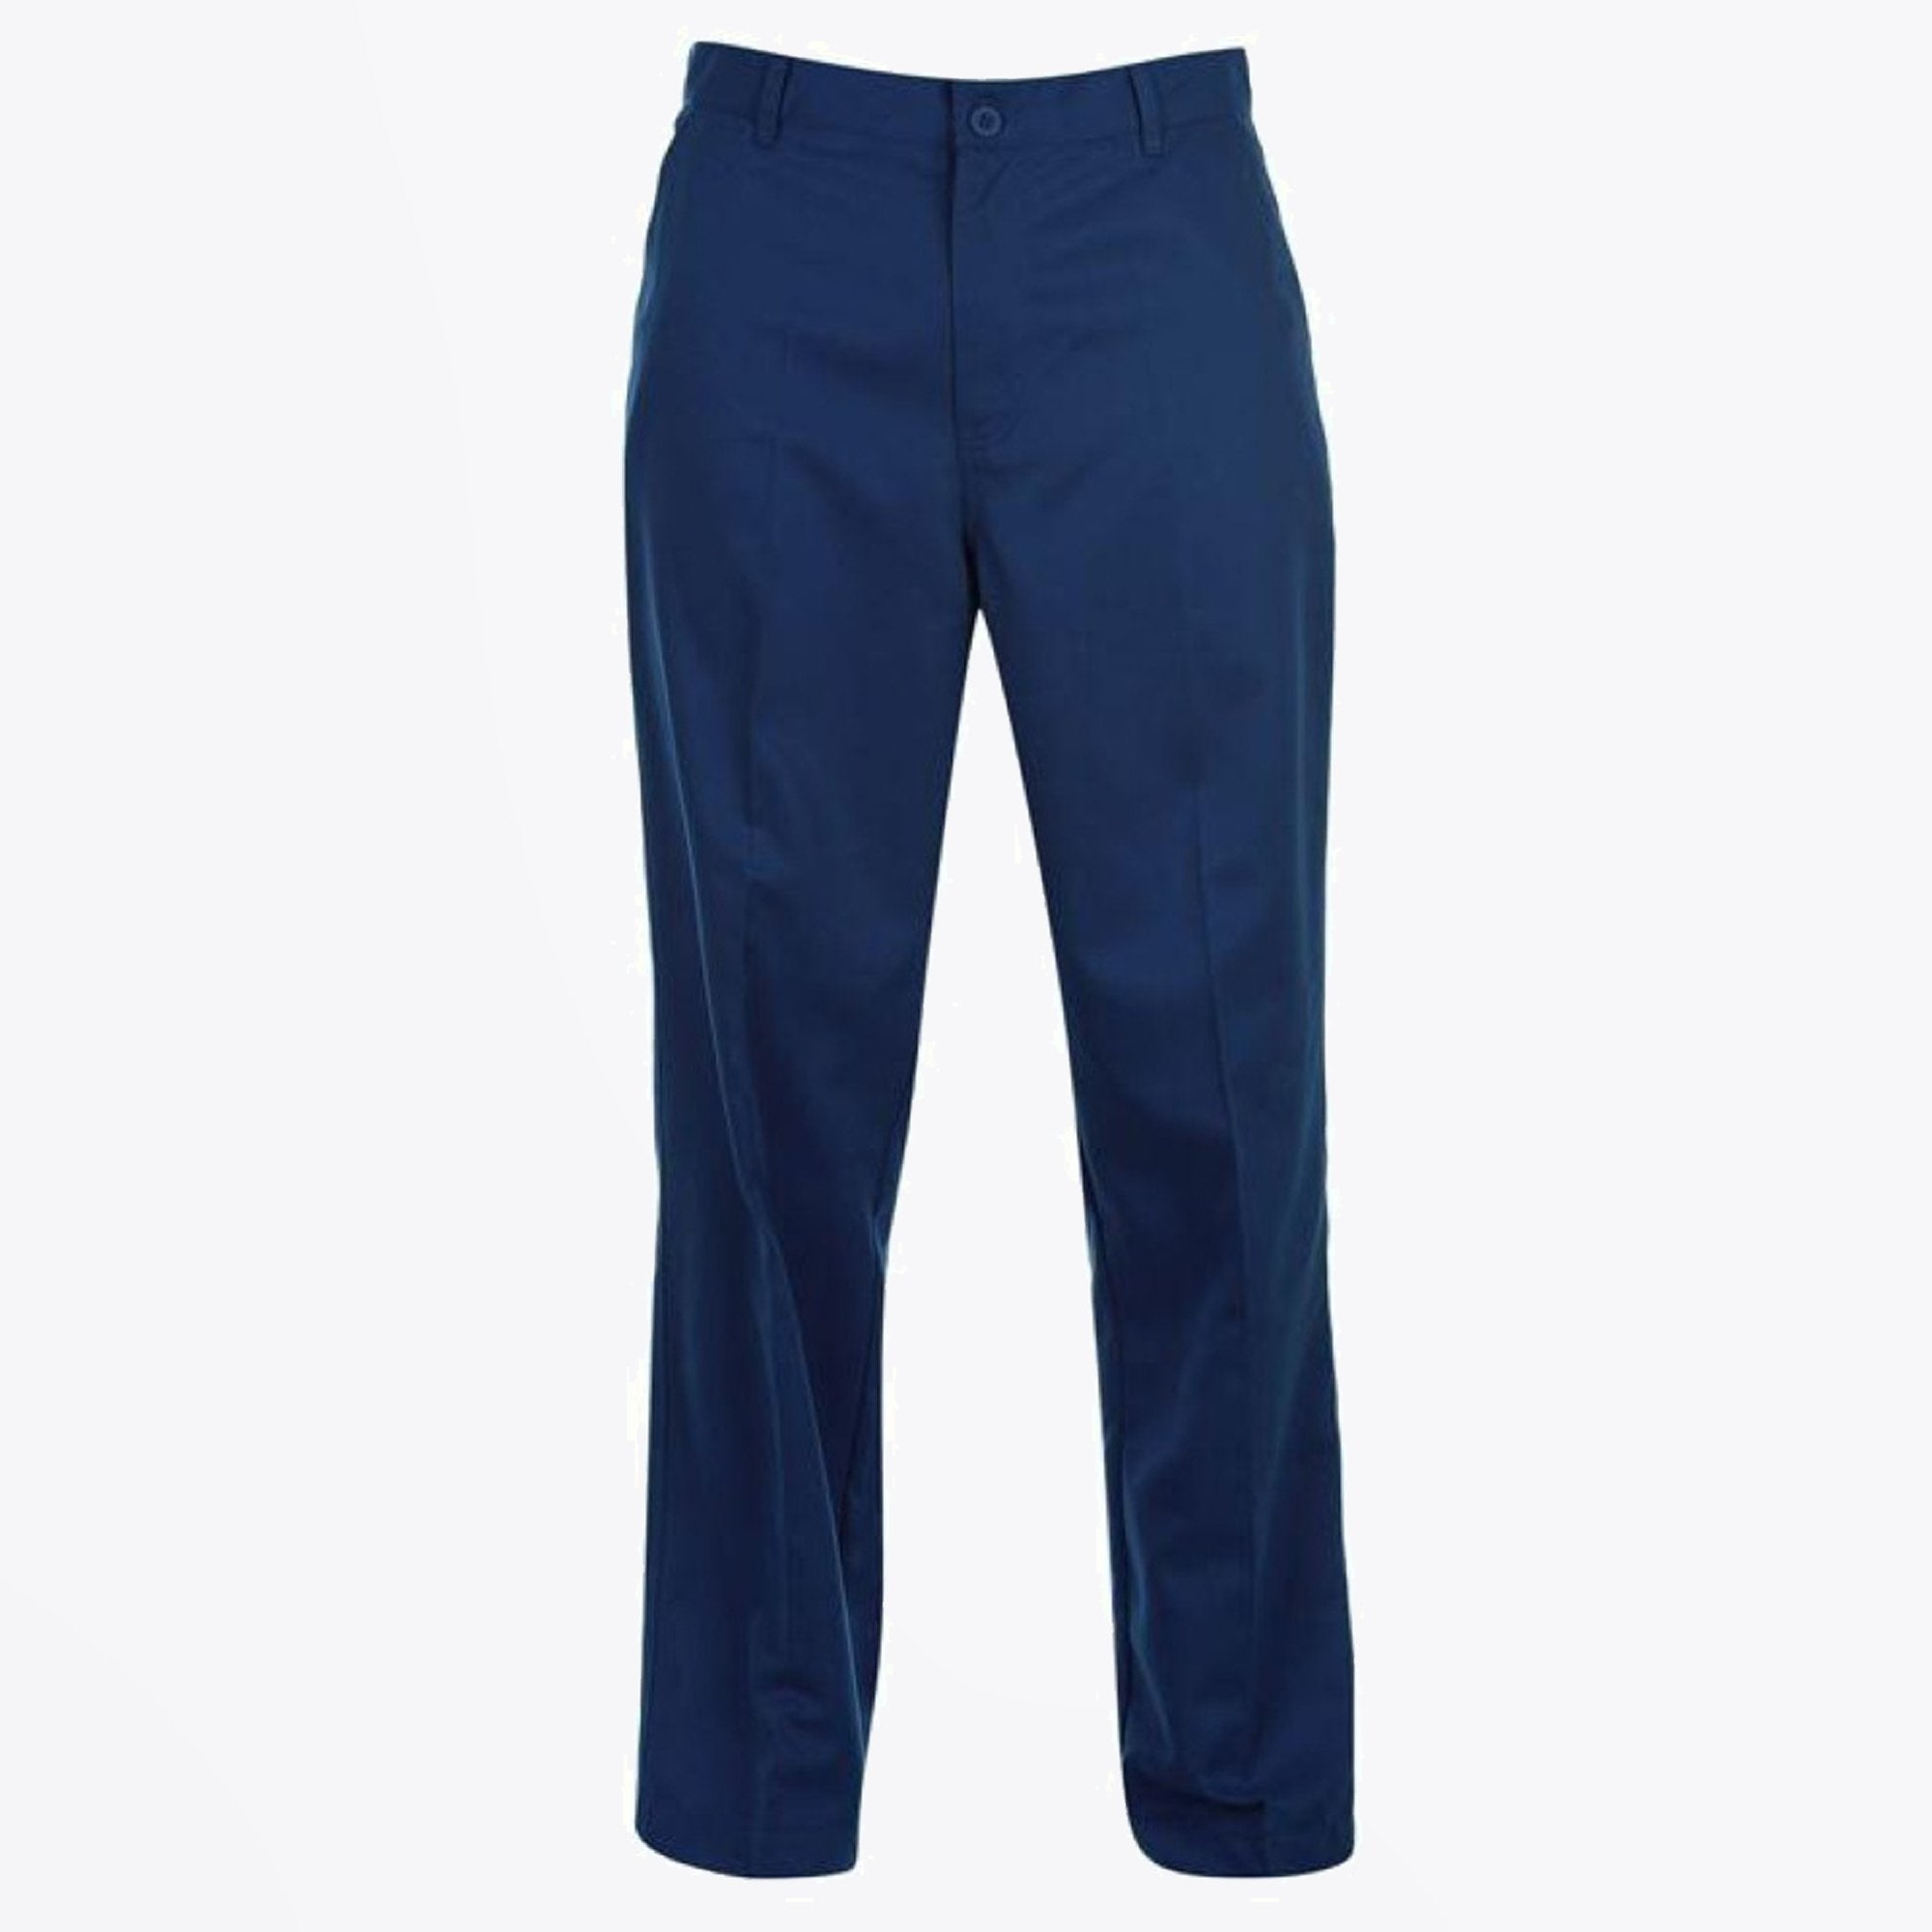 Druids Golf - Mens Winter Trousers (Navy)